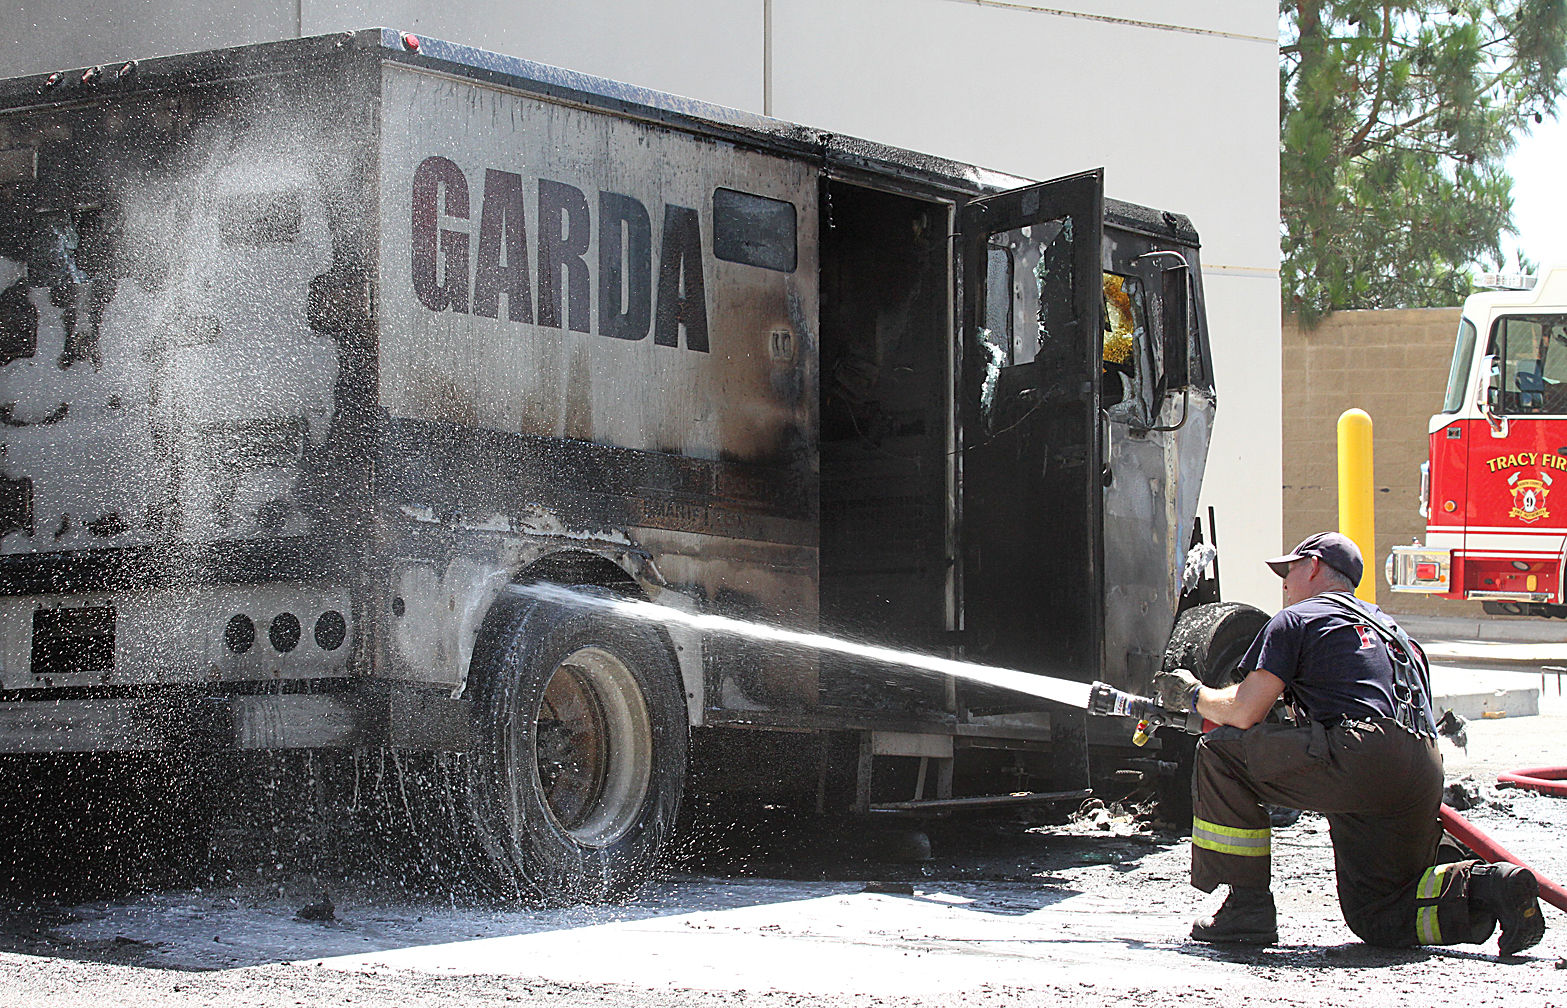 Armored car burns up near Home Depot - Golden State Newspapers ...